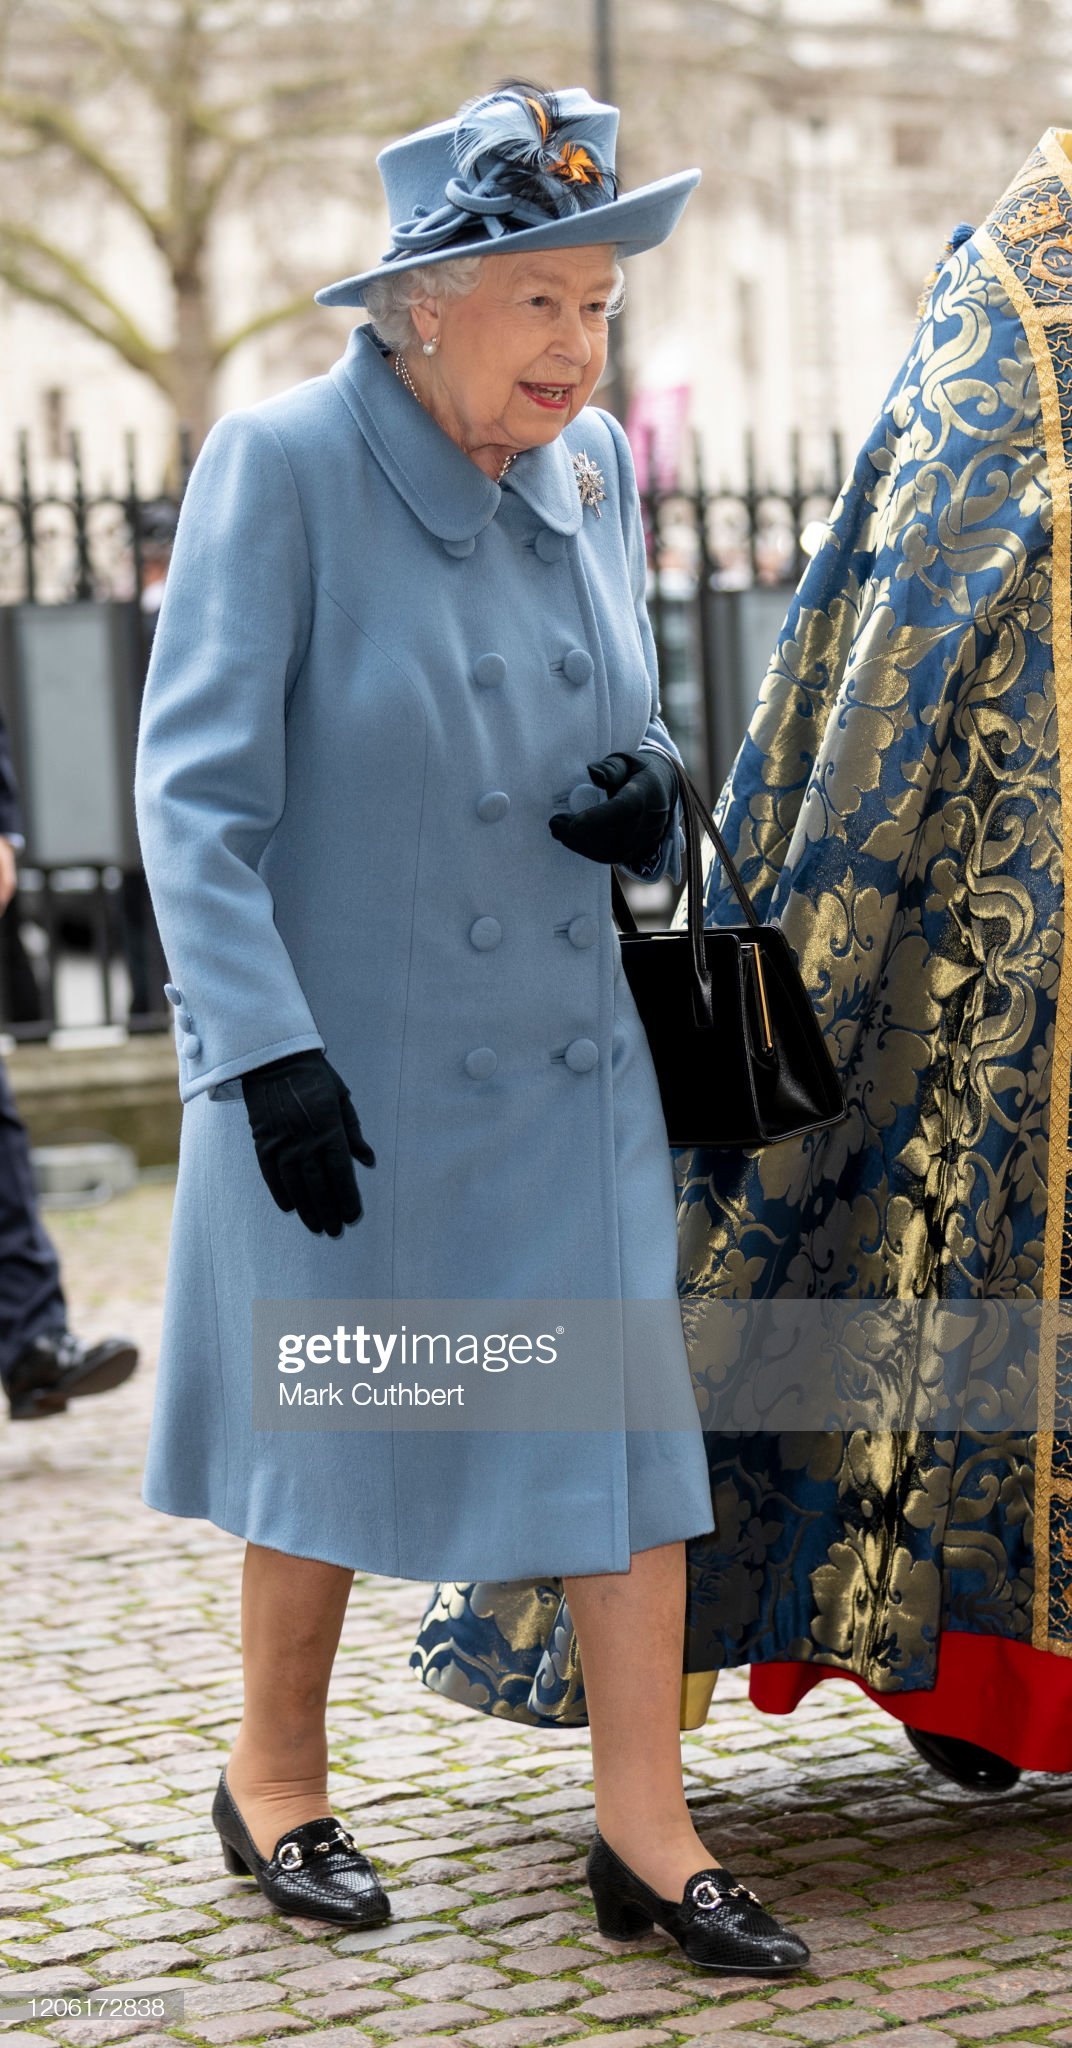 https://media.gettyimages.com/photos/queen-elizabeth-ii-attends-the-commonwealth-day-service-2020-at-on-picture-id1206172838?s=2048x2048